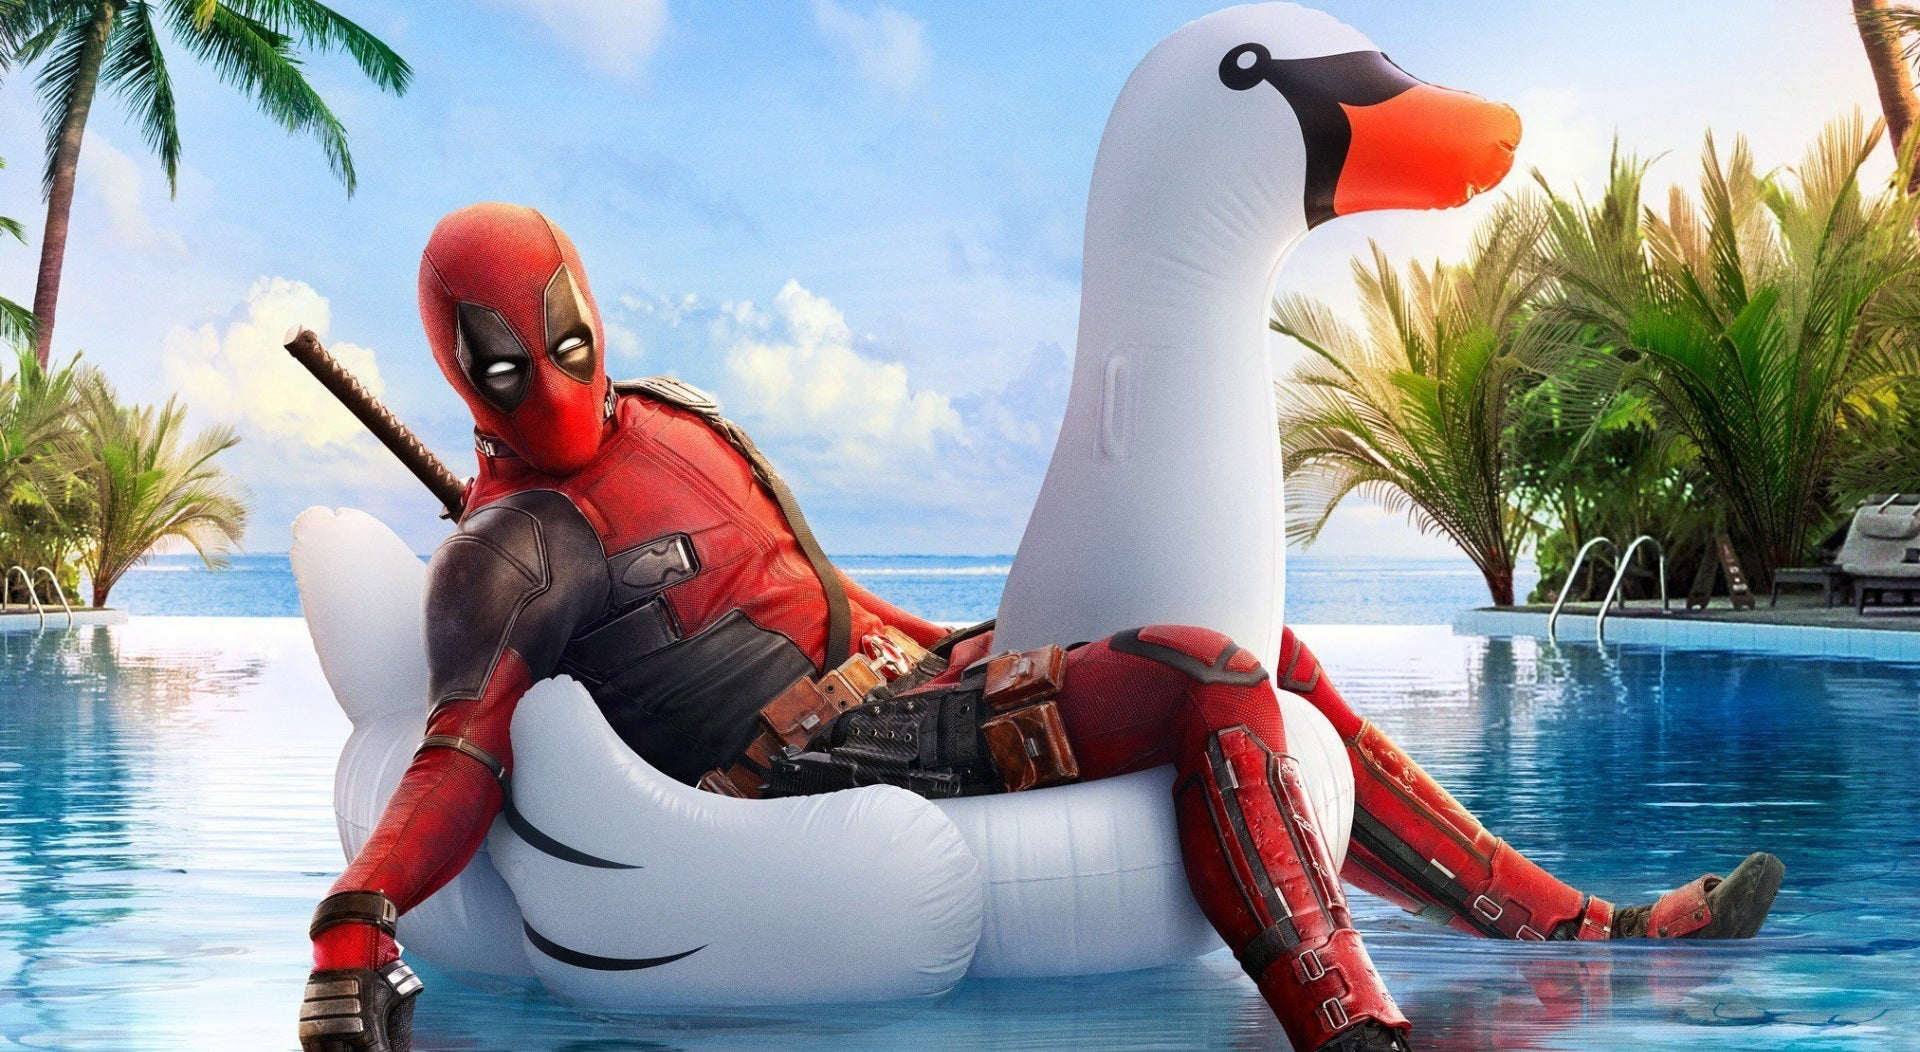 X110 -  - XXL Leinwandbilder Deadpool Filme Lustig Hollywood Wasser